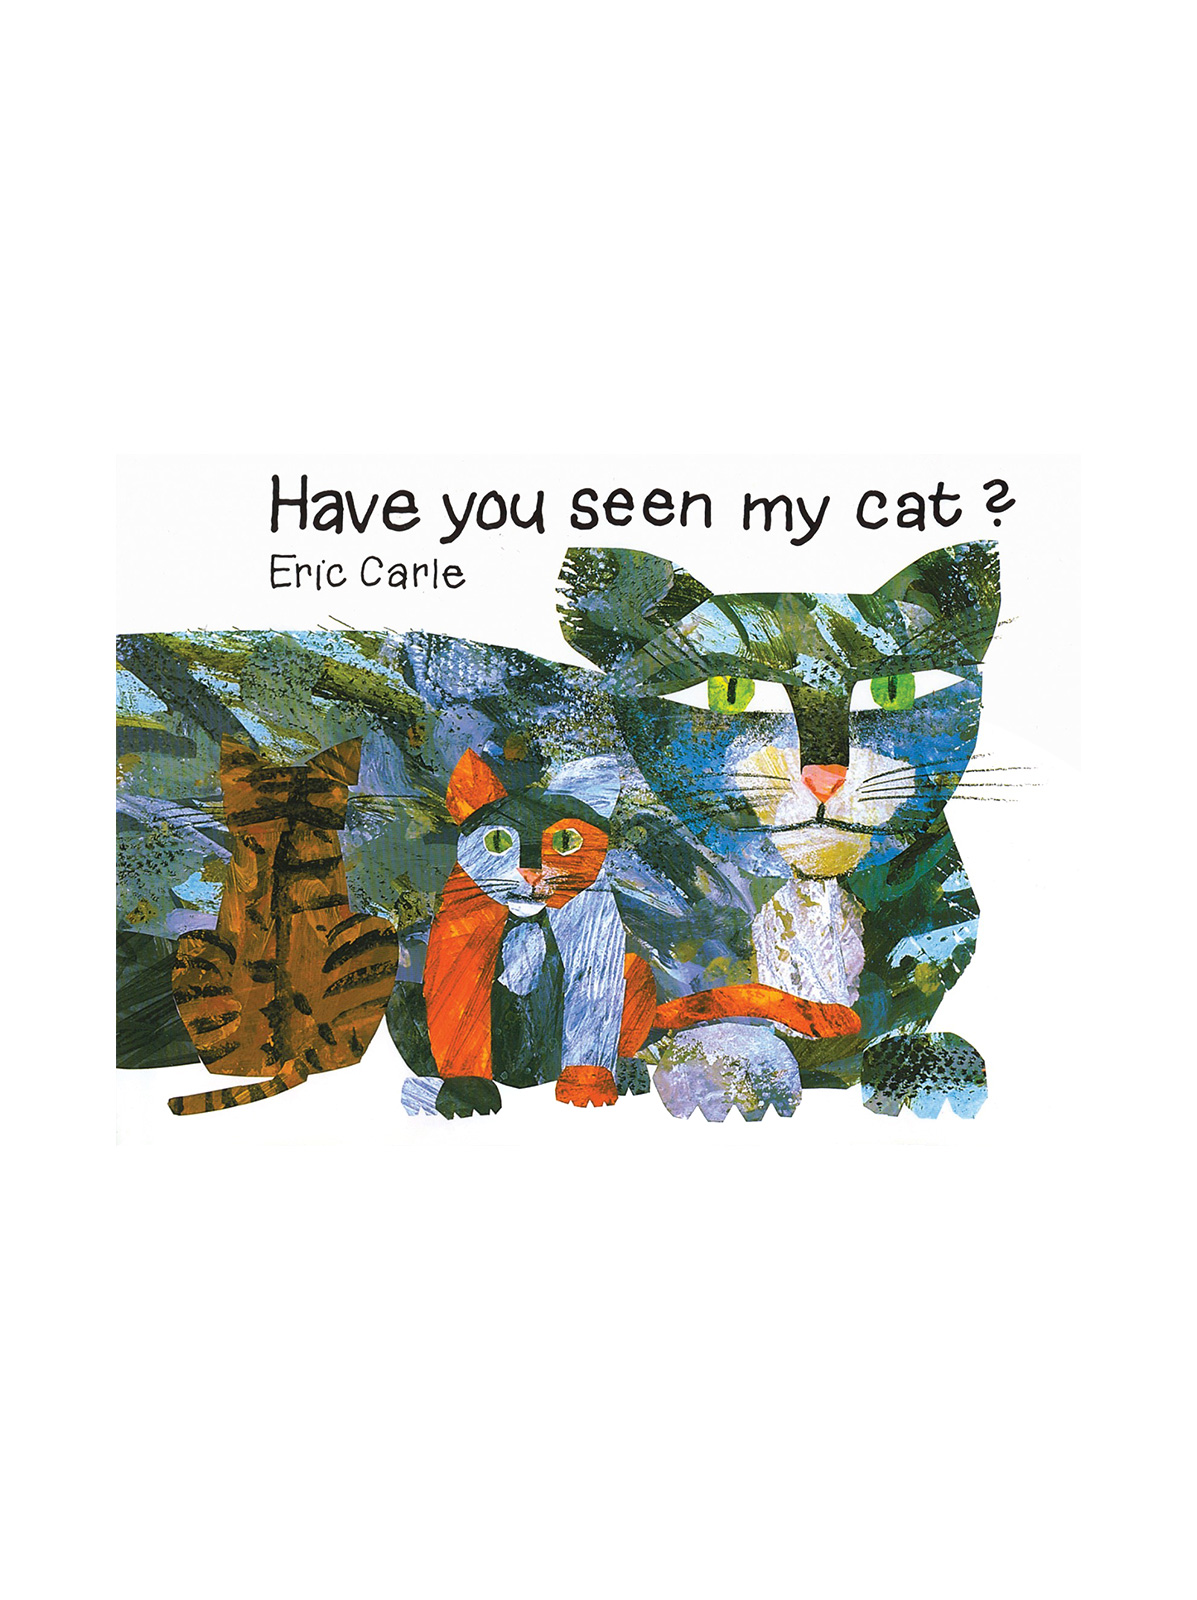 chm-eric-carle-have-you-seen-my-cat